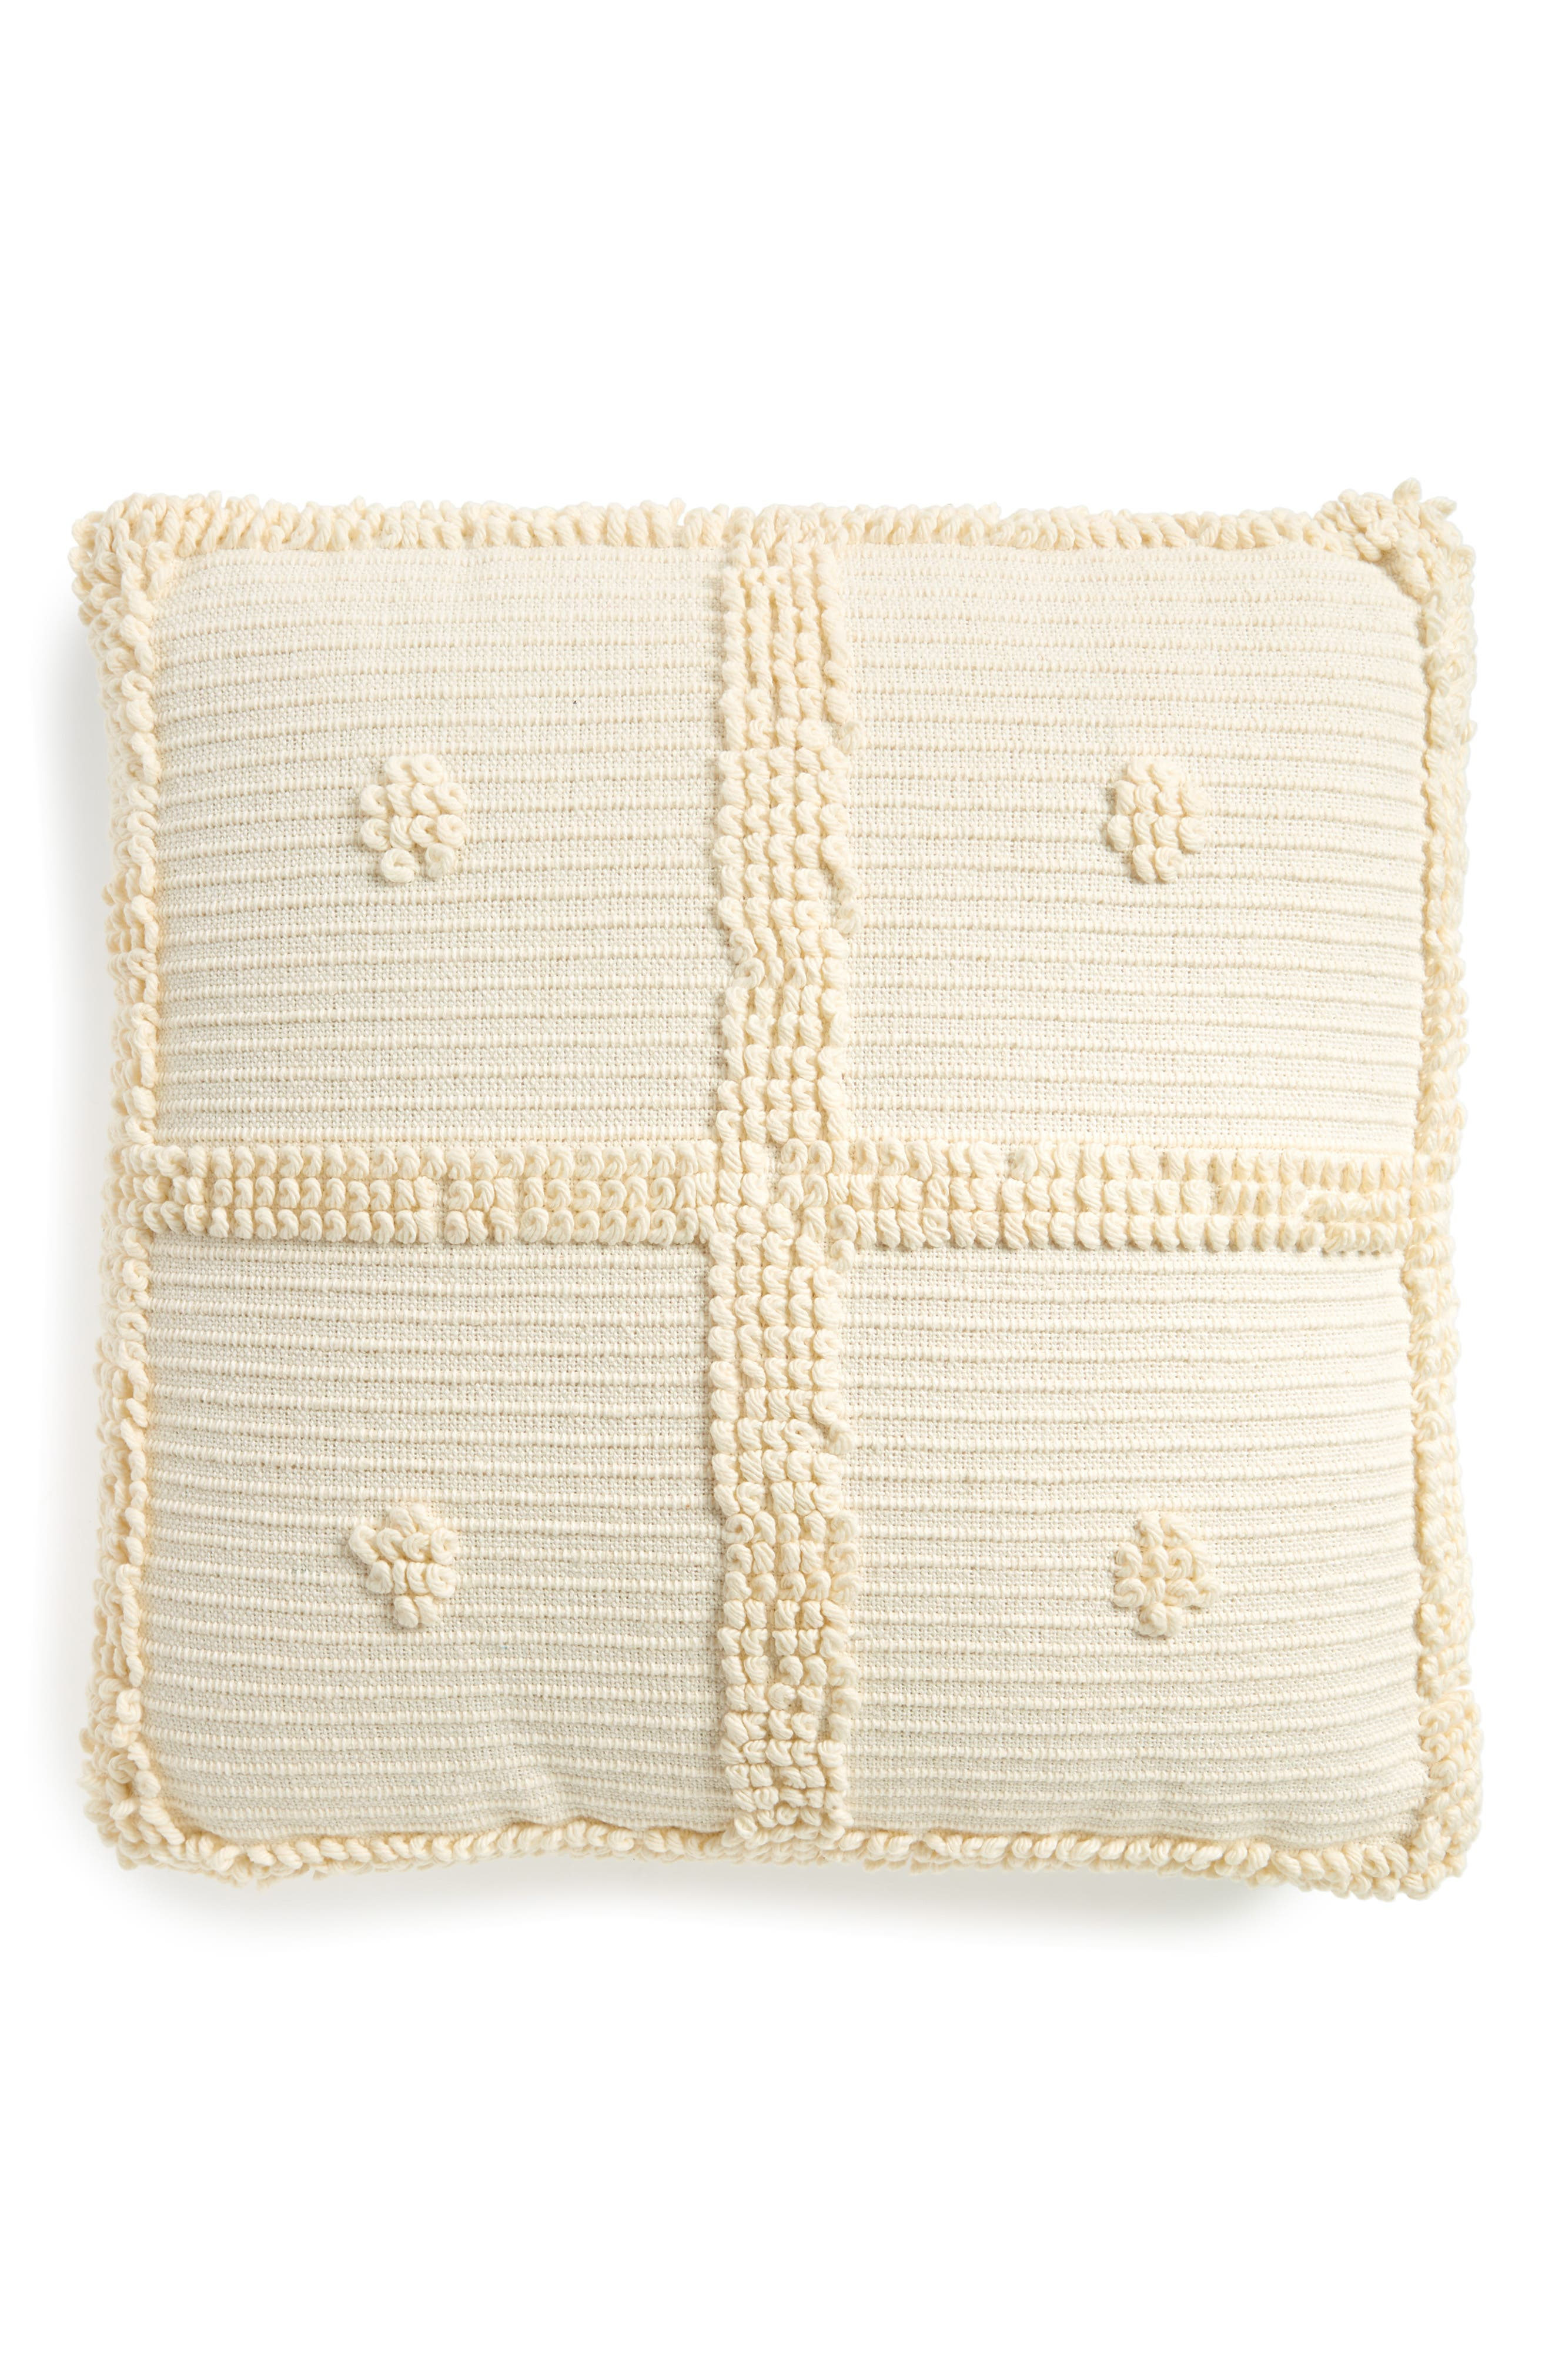 Square Accent Pillow,                             Main thumbnail 1, color,                             White